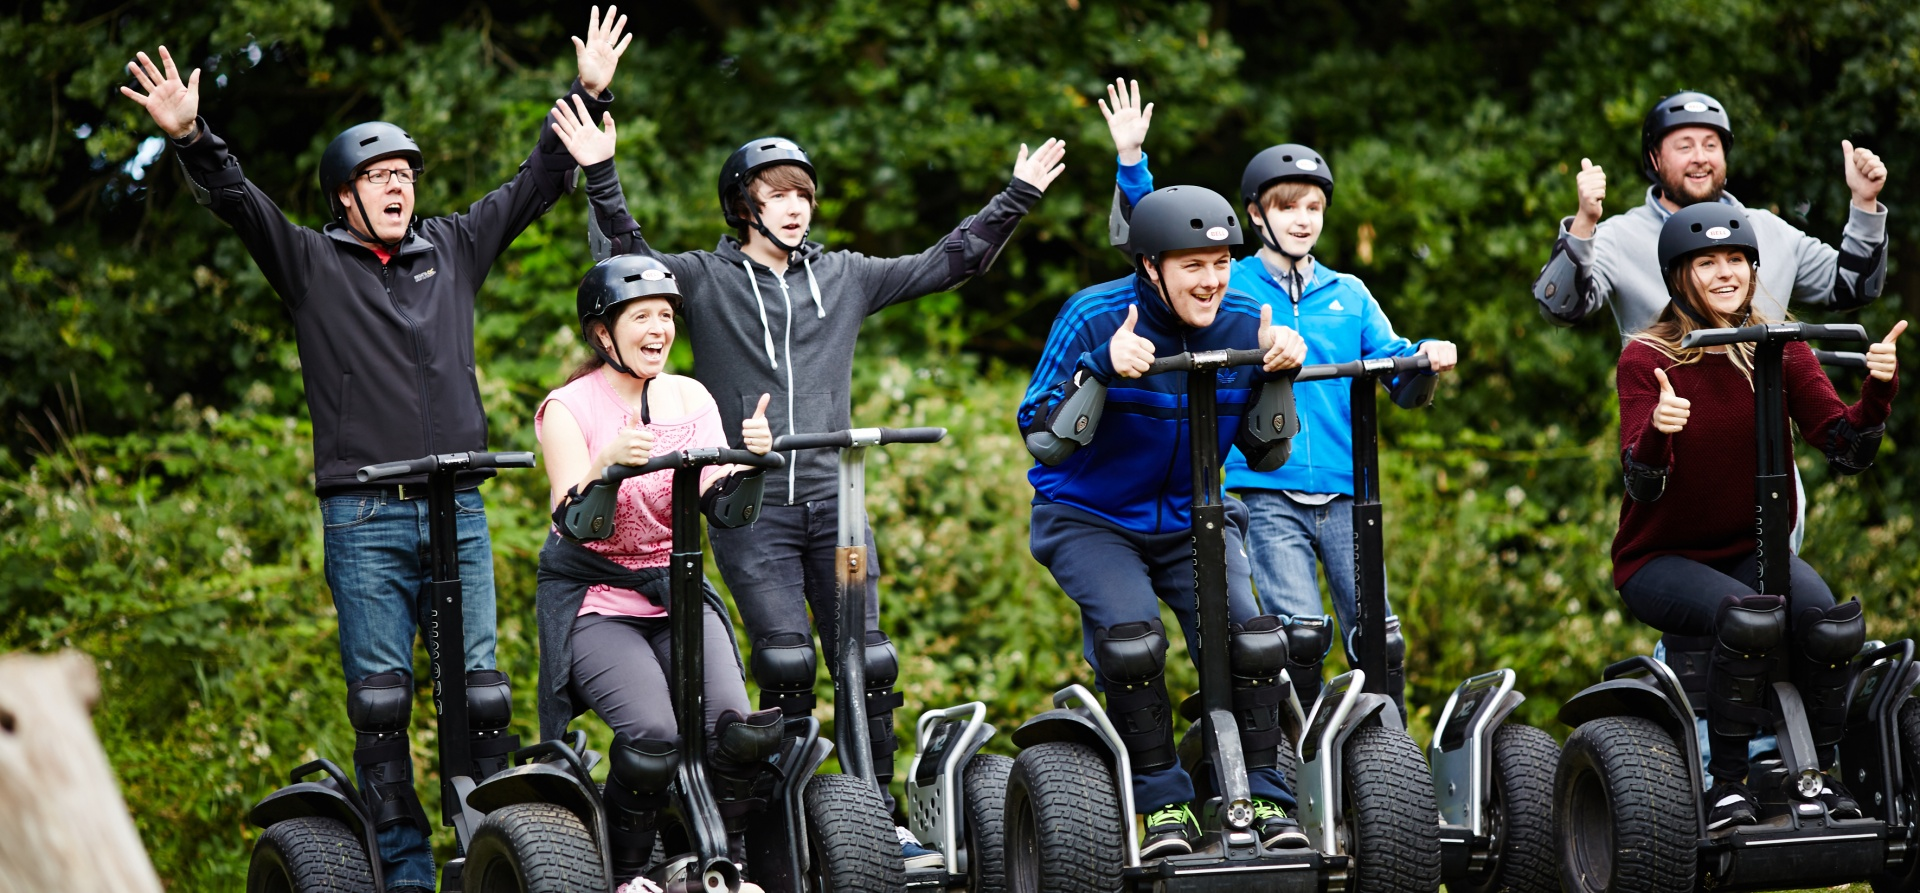 Segway Adventure For 2 Special Offer-4